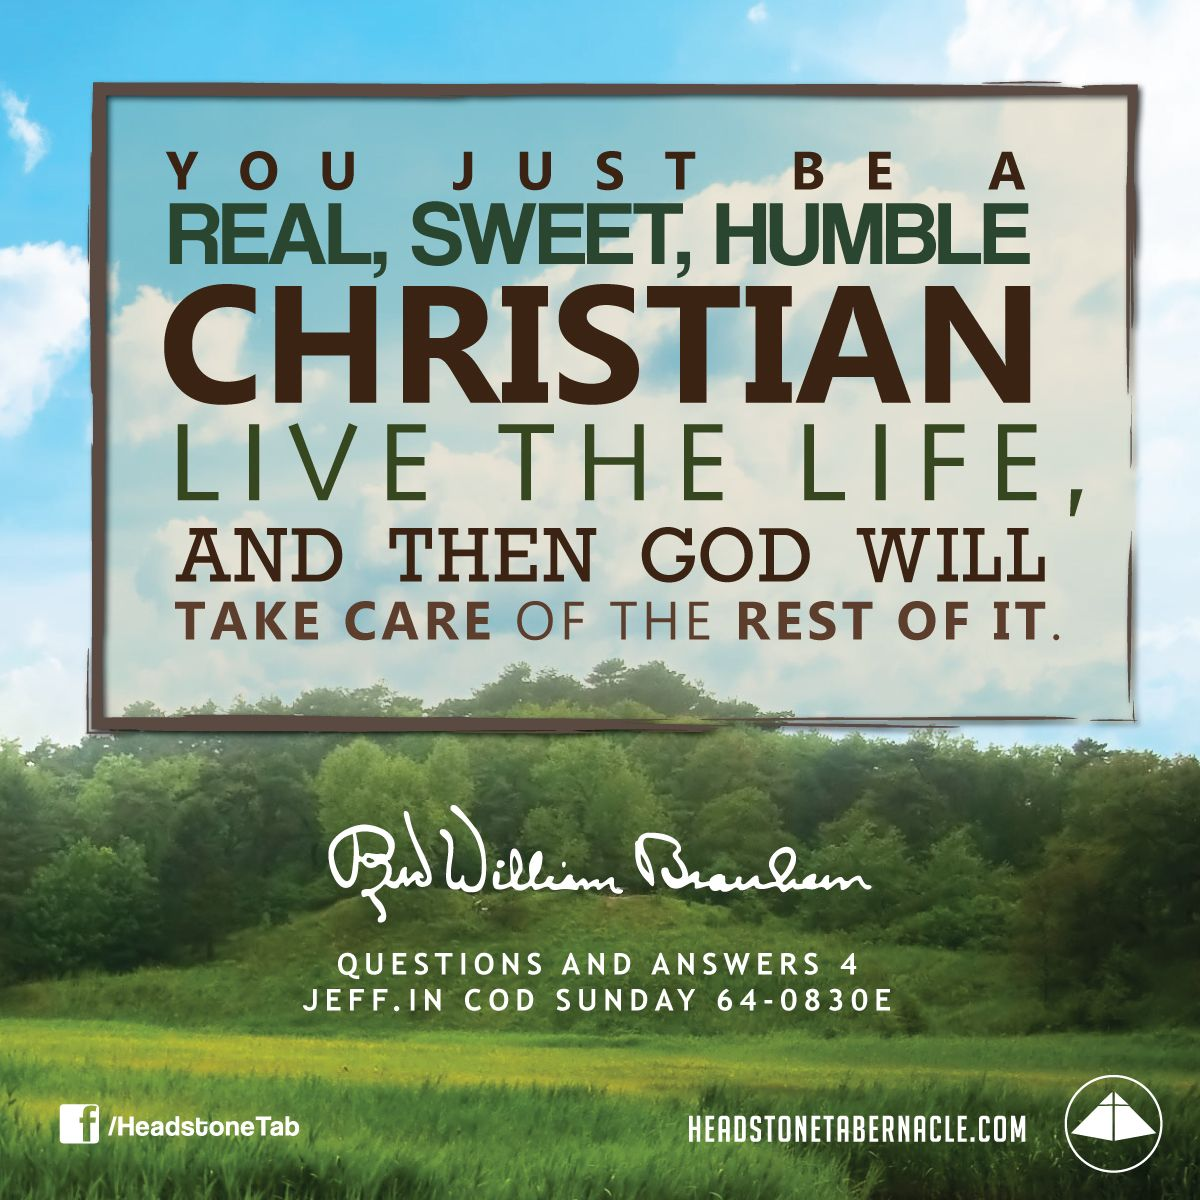 Questioning Faith Quotes: You Just Be A Real, Sweet, Humble Christian, Live The Life